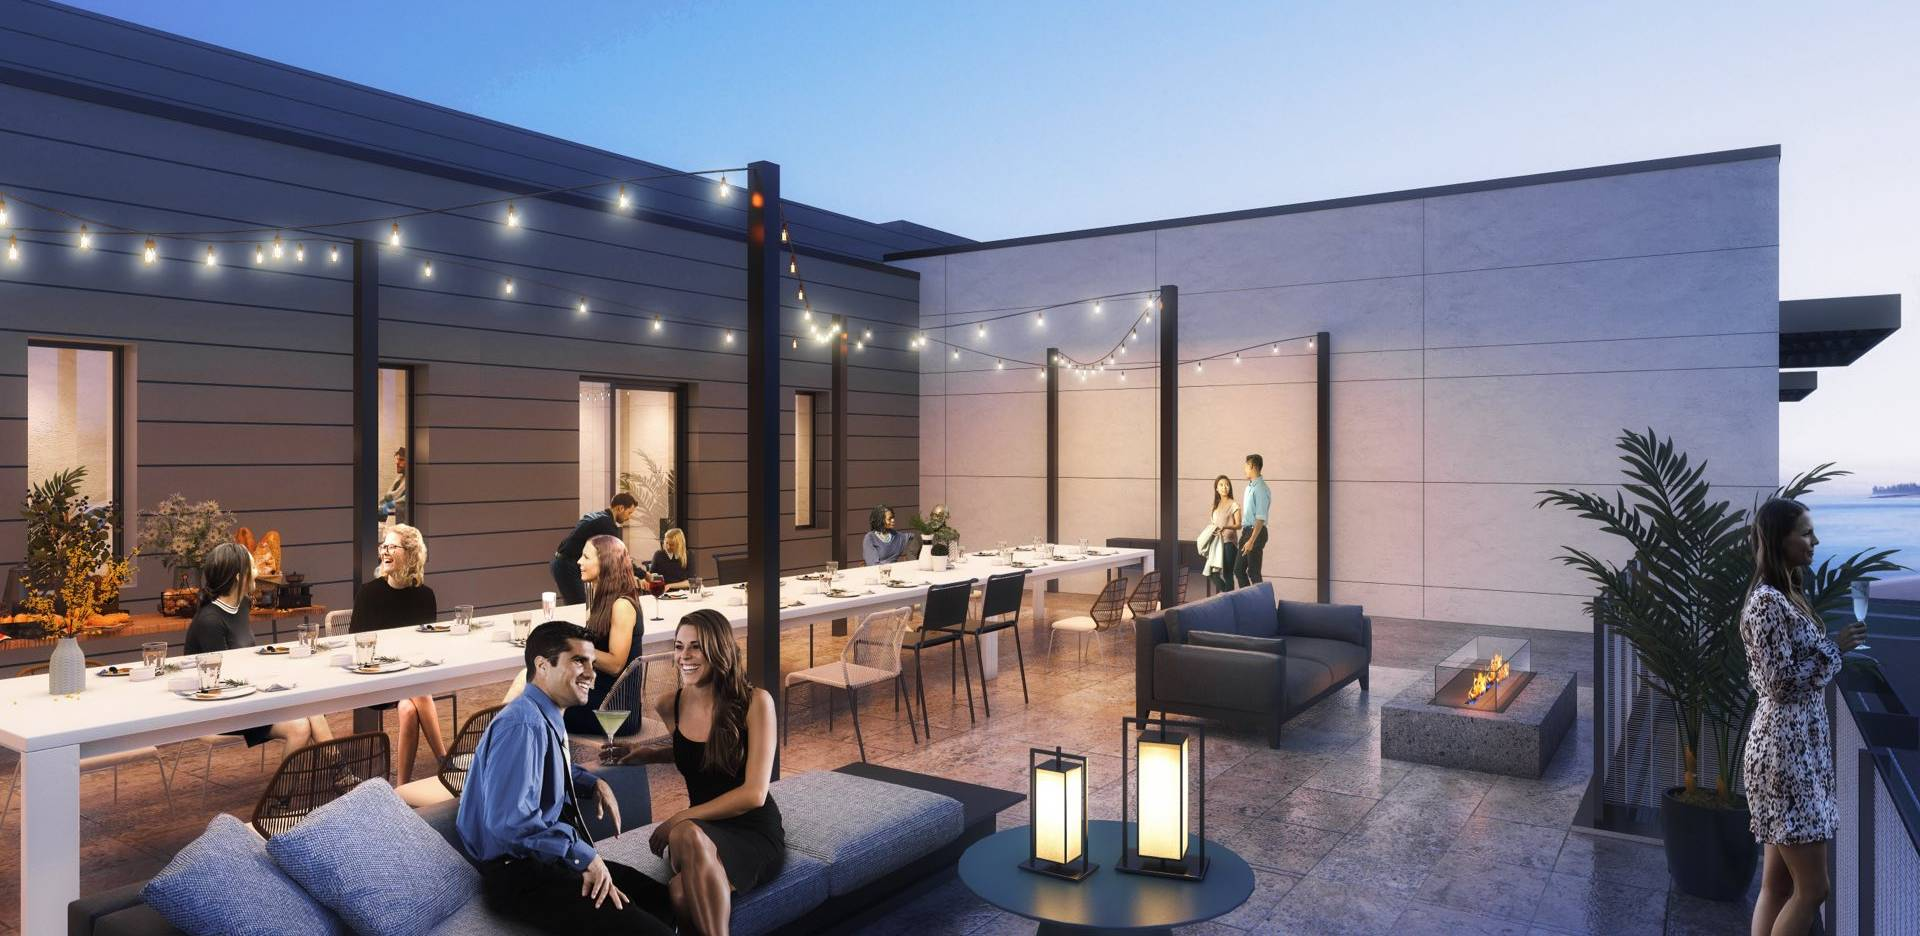 Our gathering terrace with communal seating